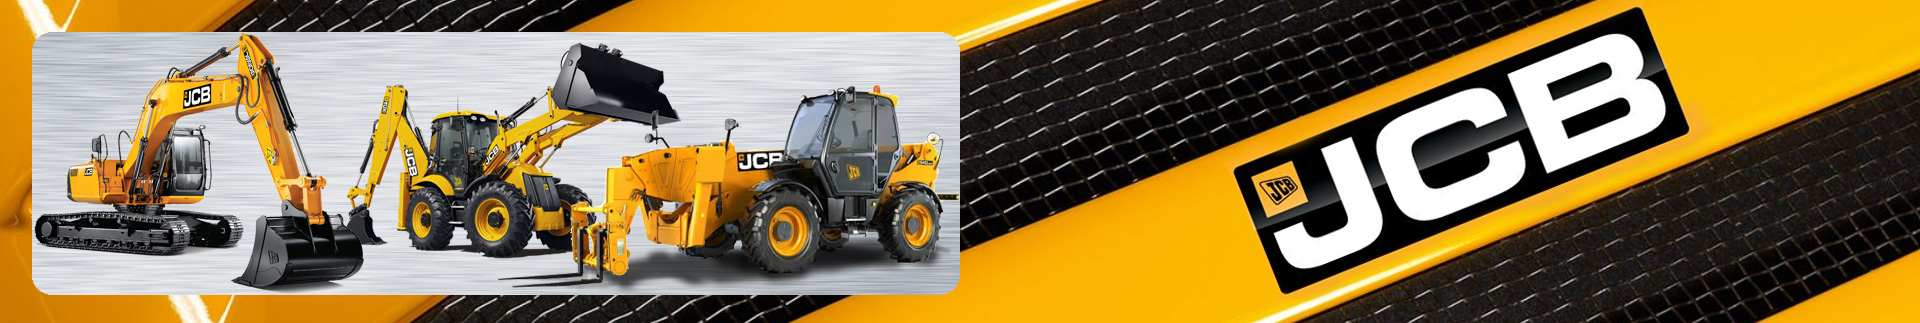 Access Equipment Hire & Rental   Access Hire Middle East